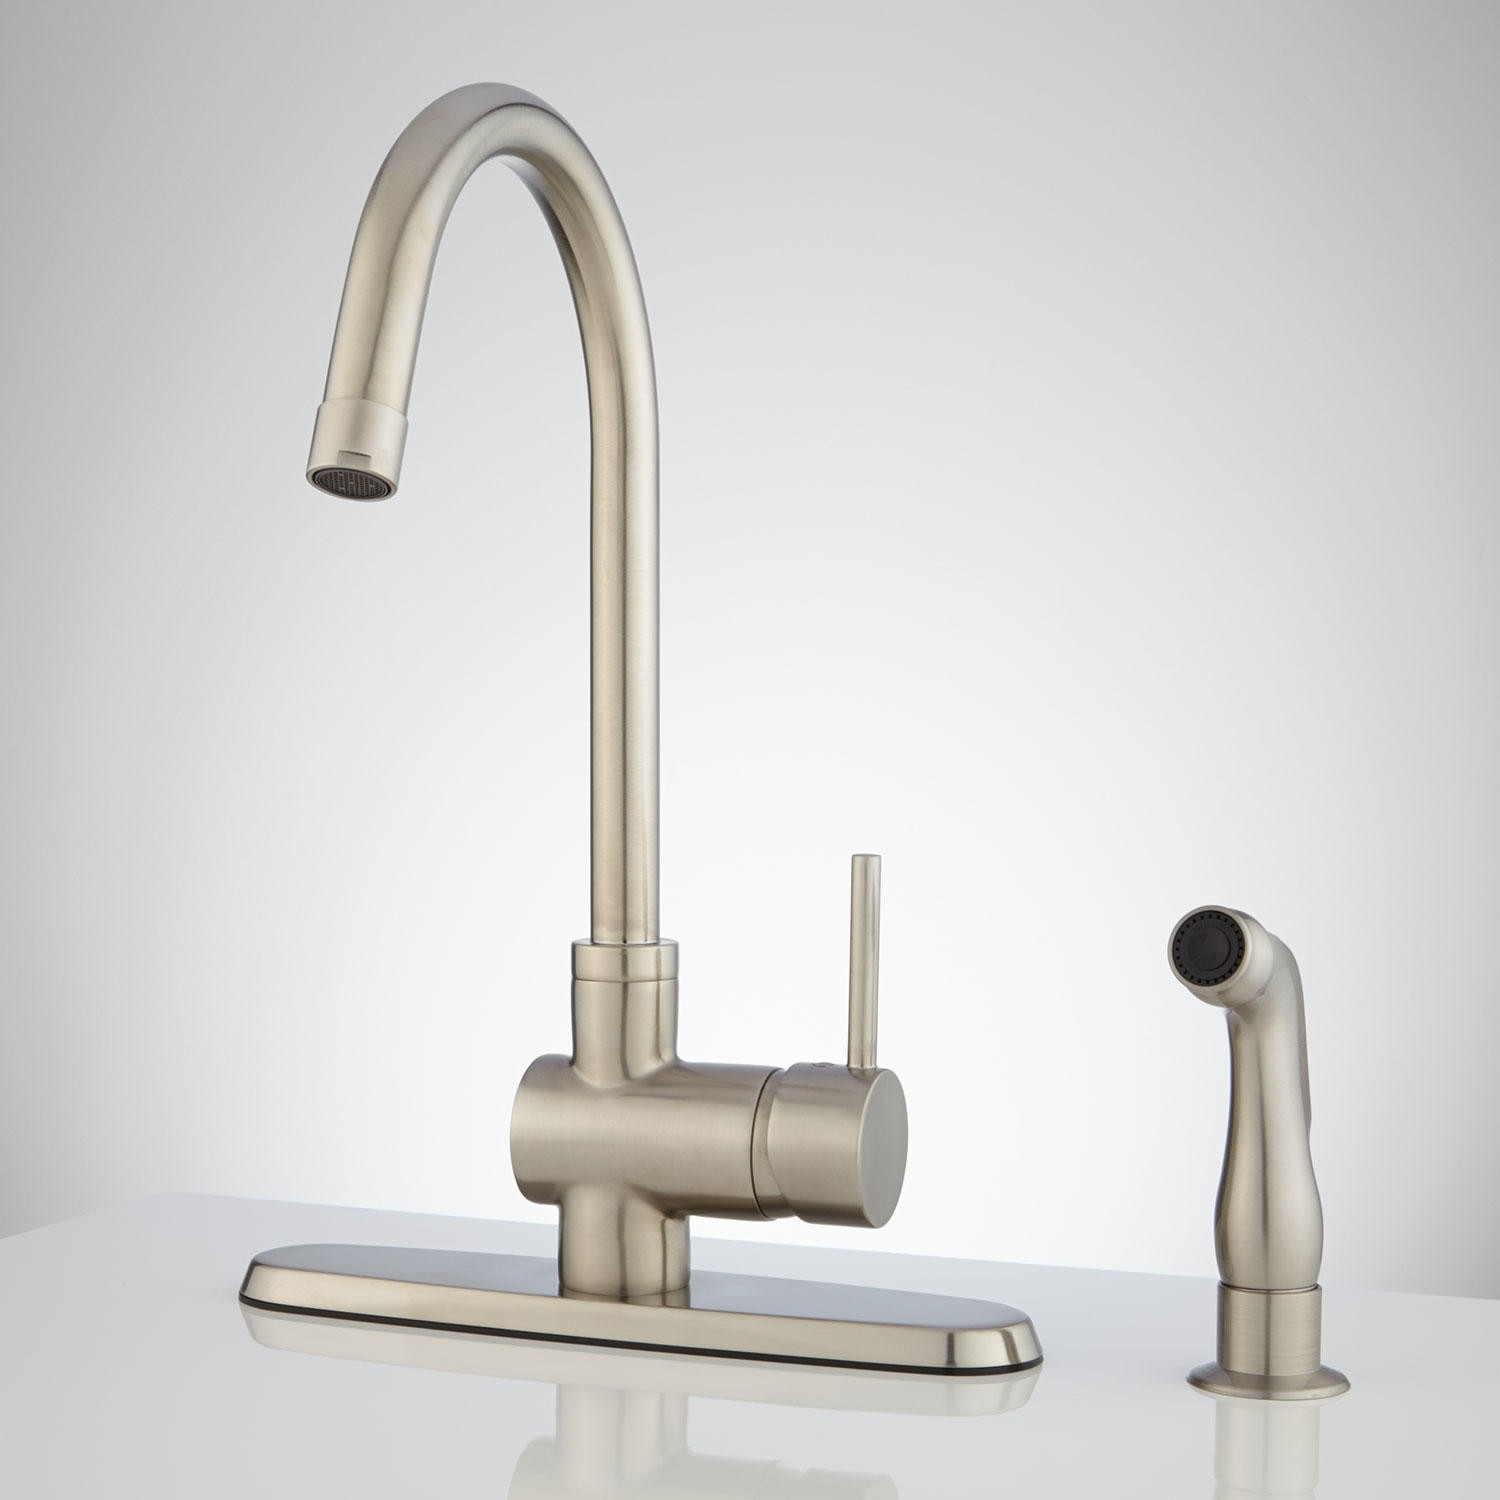 Ideas, kitchen bar faucets best touch kitchen faucet 2017 combined pertaining to dimensions 1500 x 1500  .